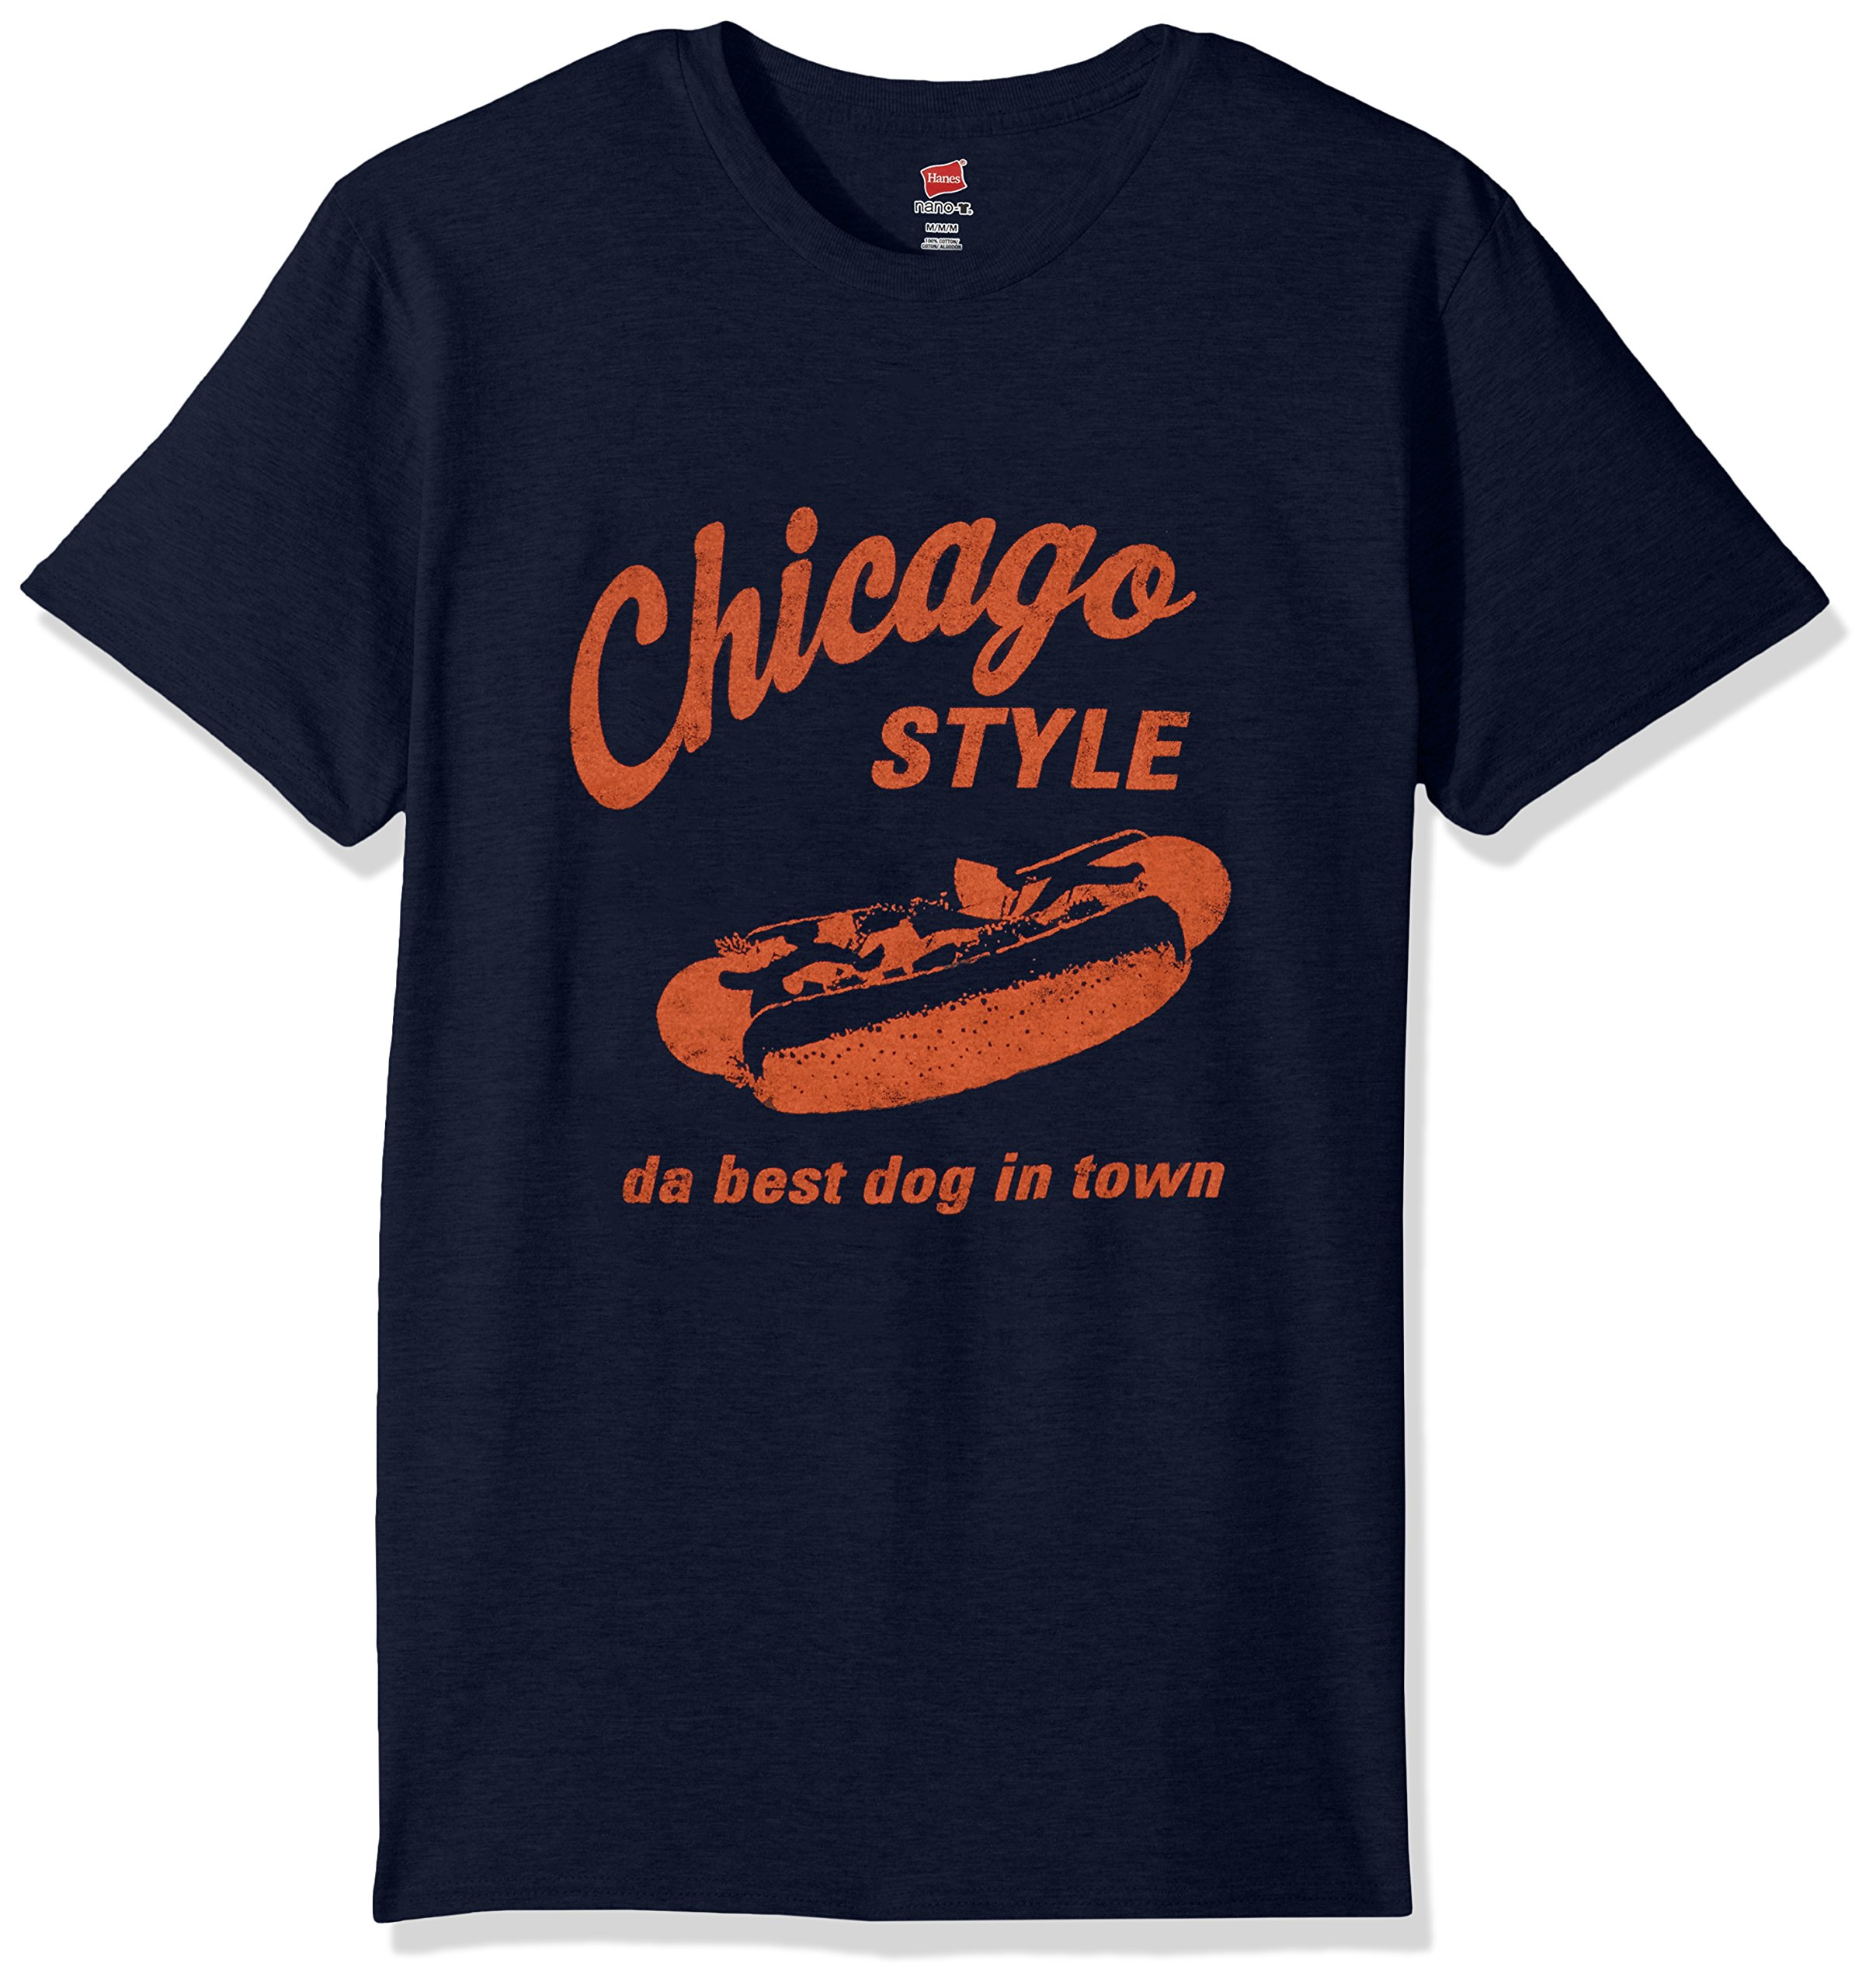 Hanes Men's Humor Graphic T-Shirt, Navy/Chicago, Large by Hanes